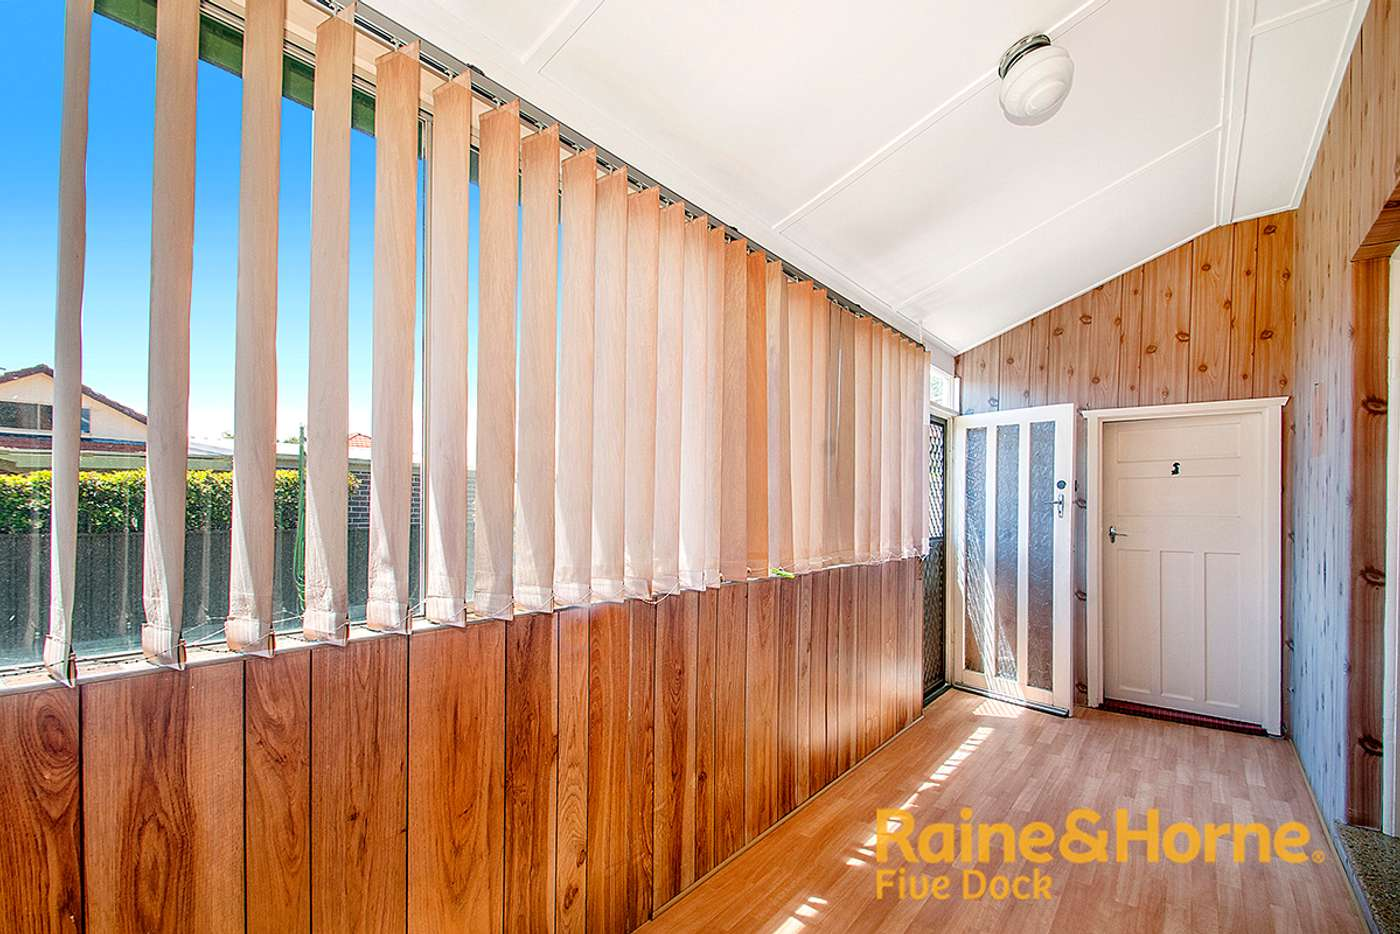 Seventh view of Homely house listing, 12 Gartfern Ave, Wareemba NSW 2046